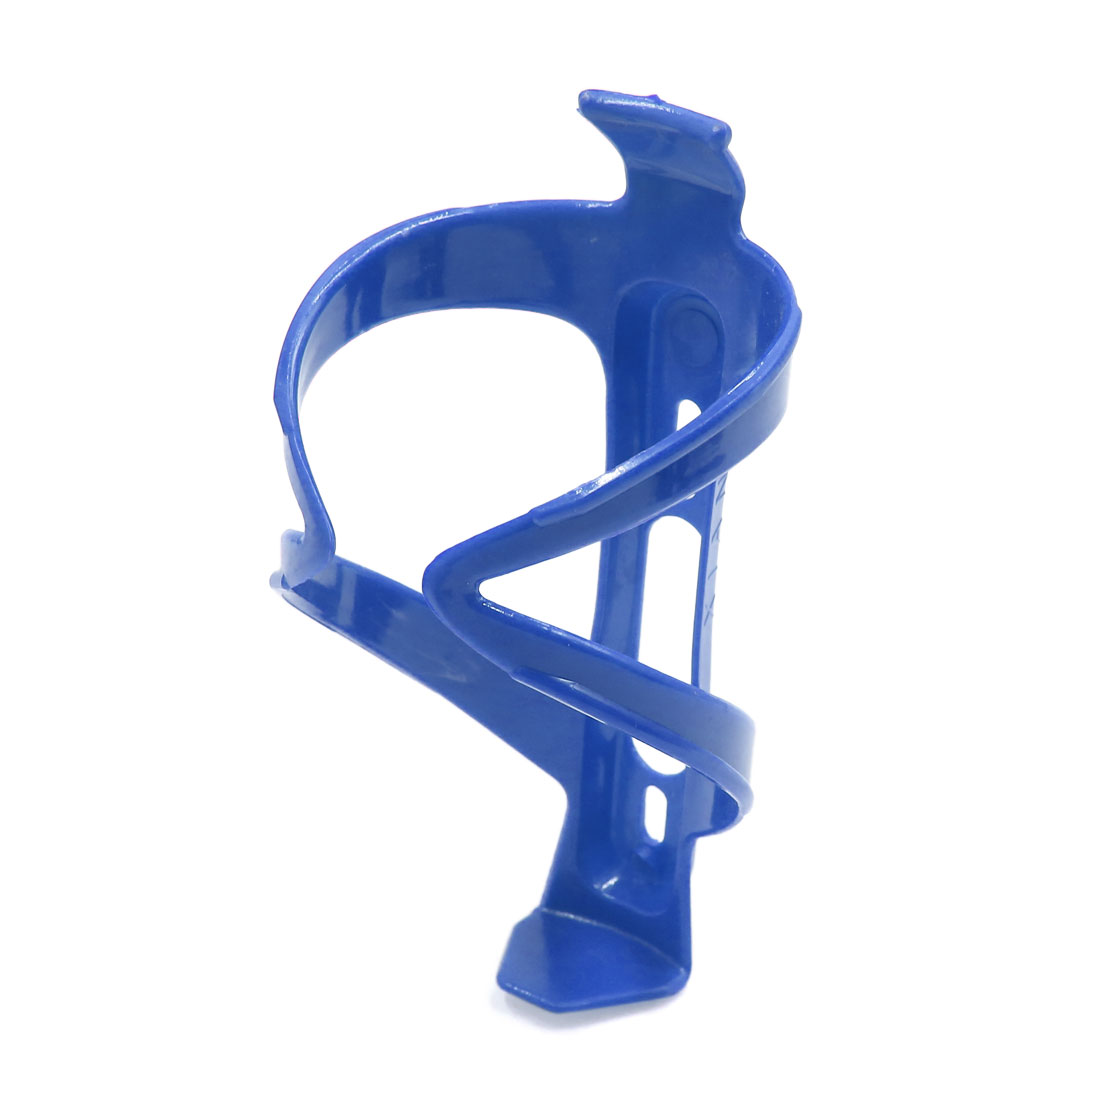 Plastic Bike Bicycle Cycling Outdoor Drink Water Bottle Cup Holder Bracket Blue